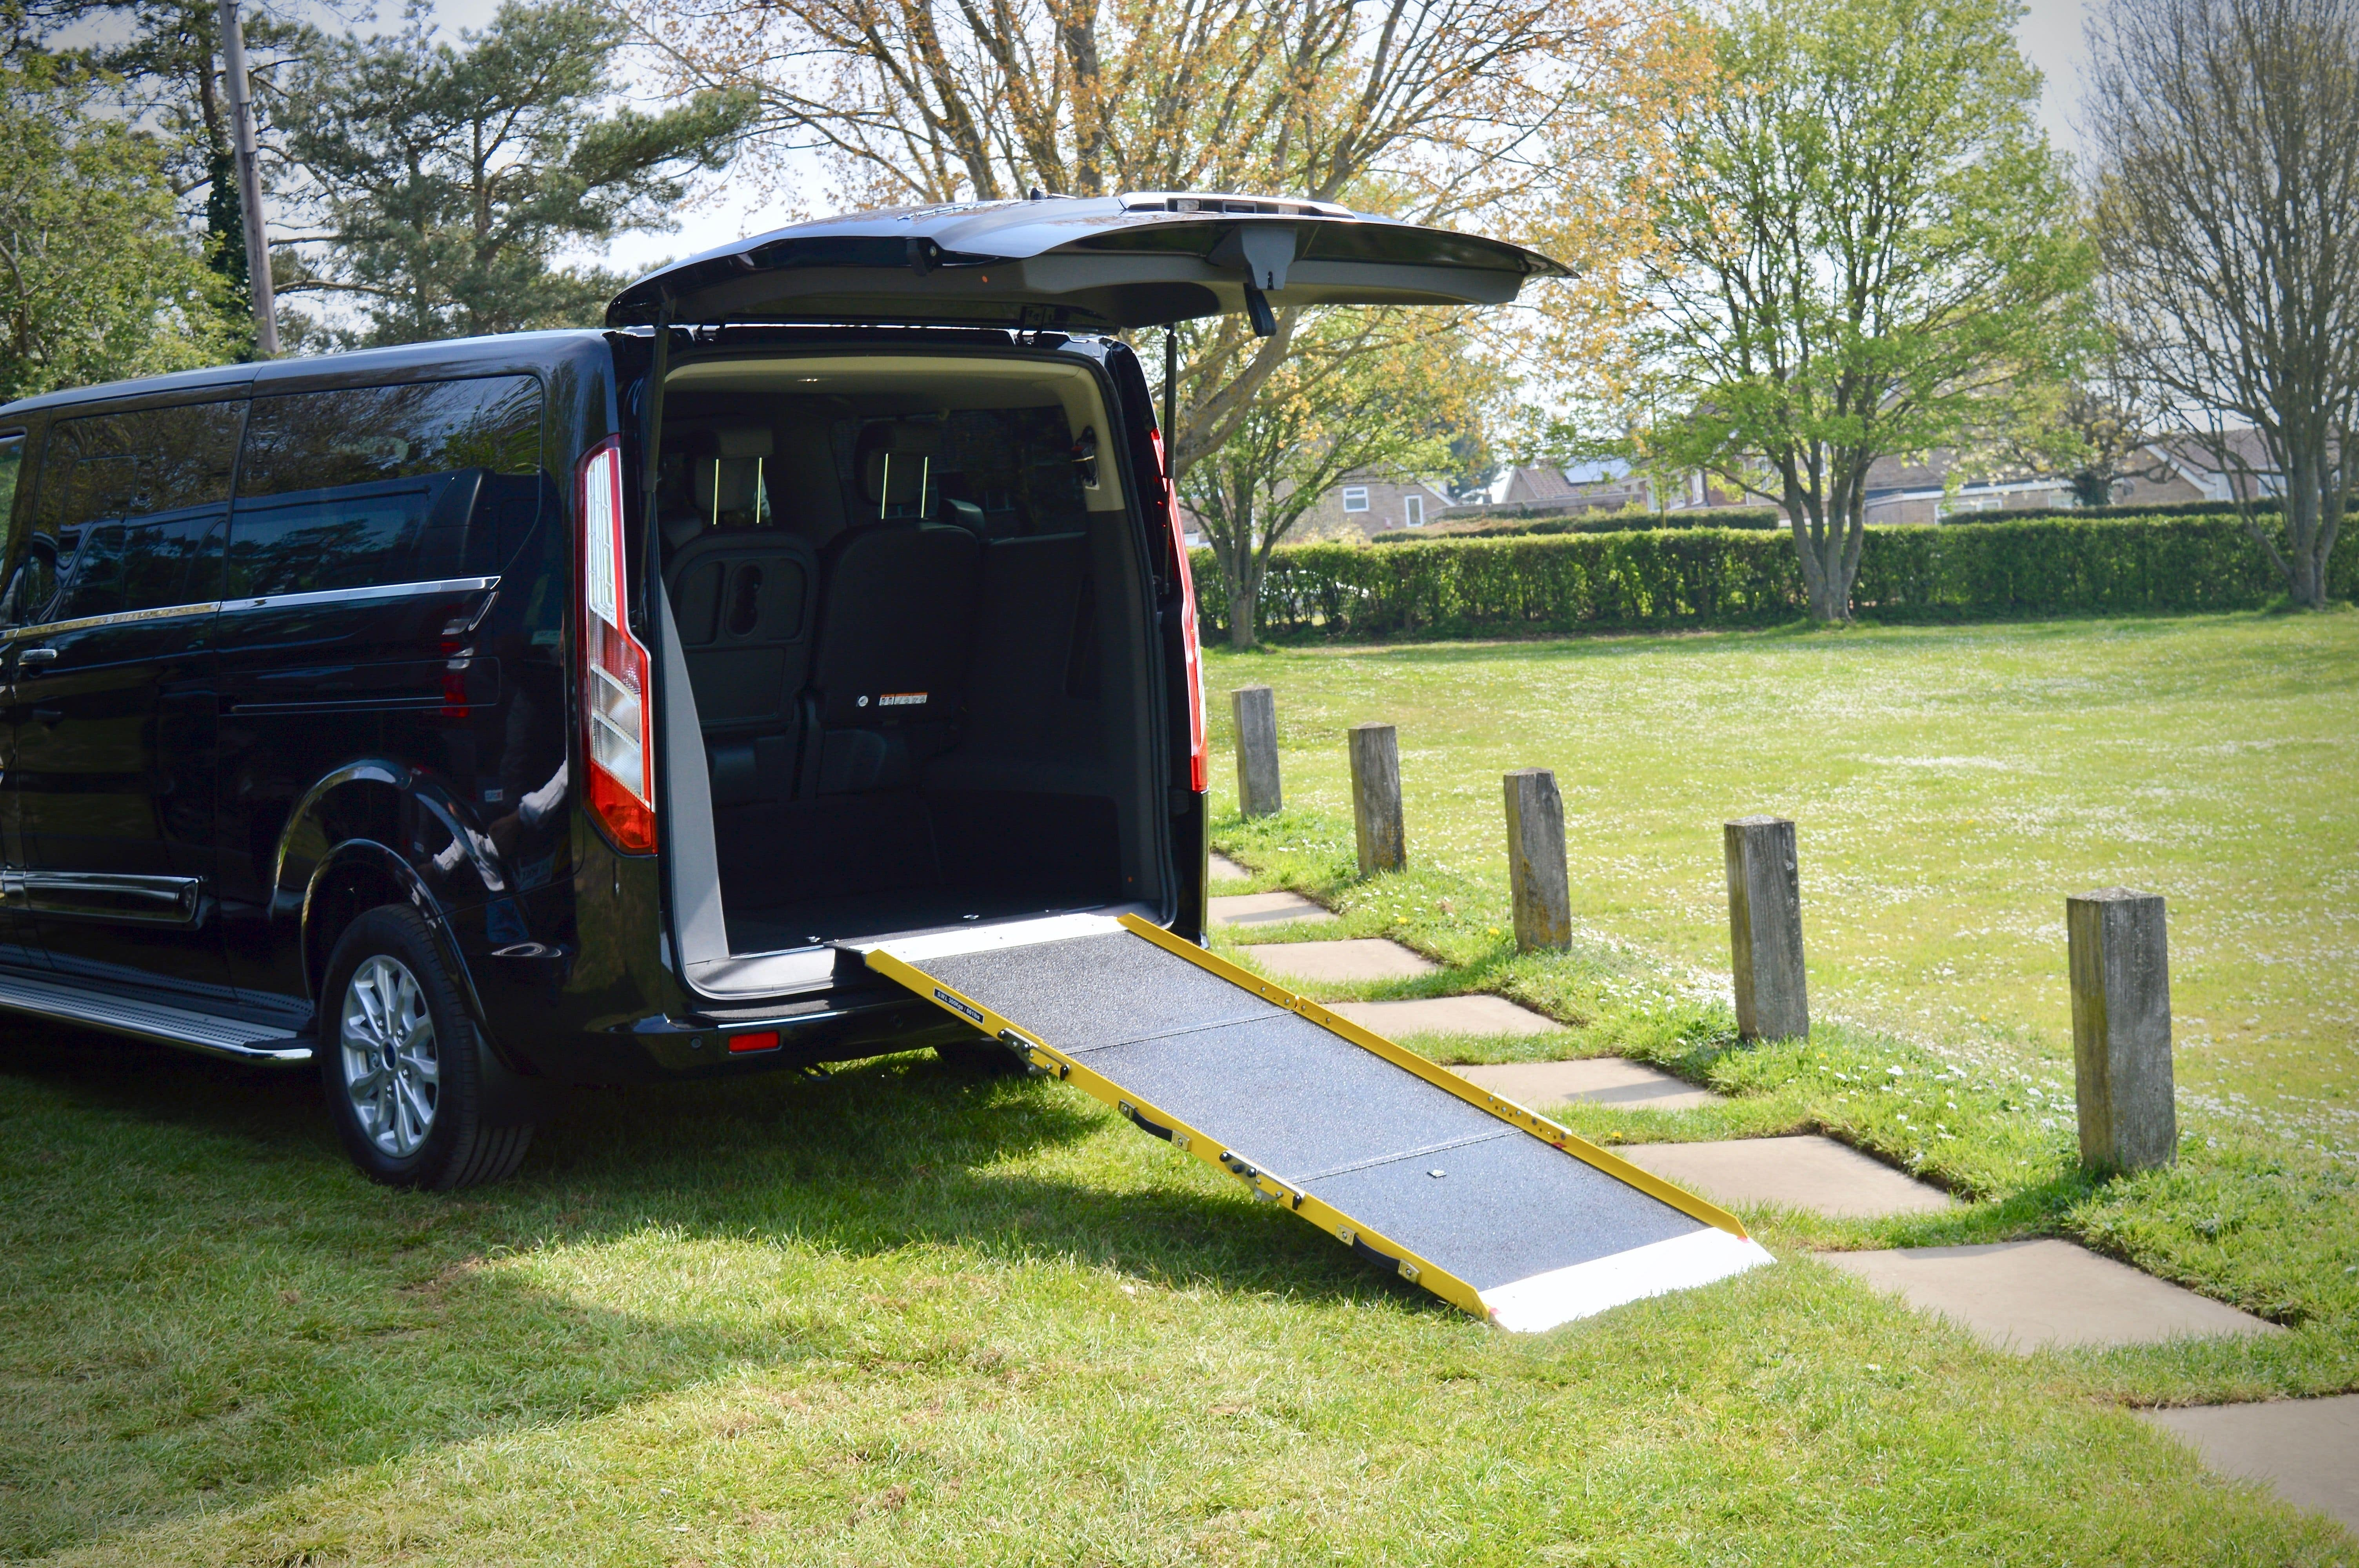 The ramp for wheelchair passengers attaches to the rear end of the vehicle